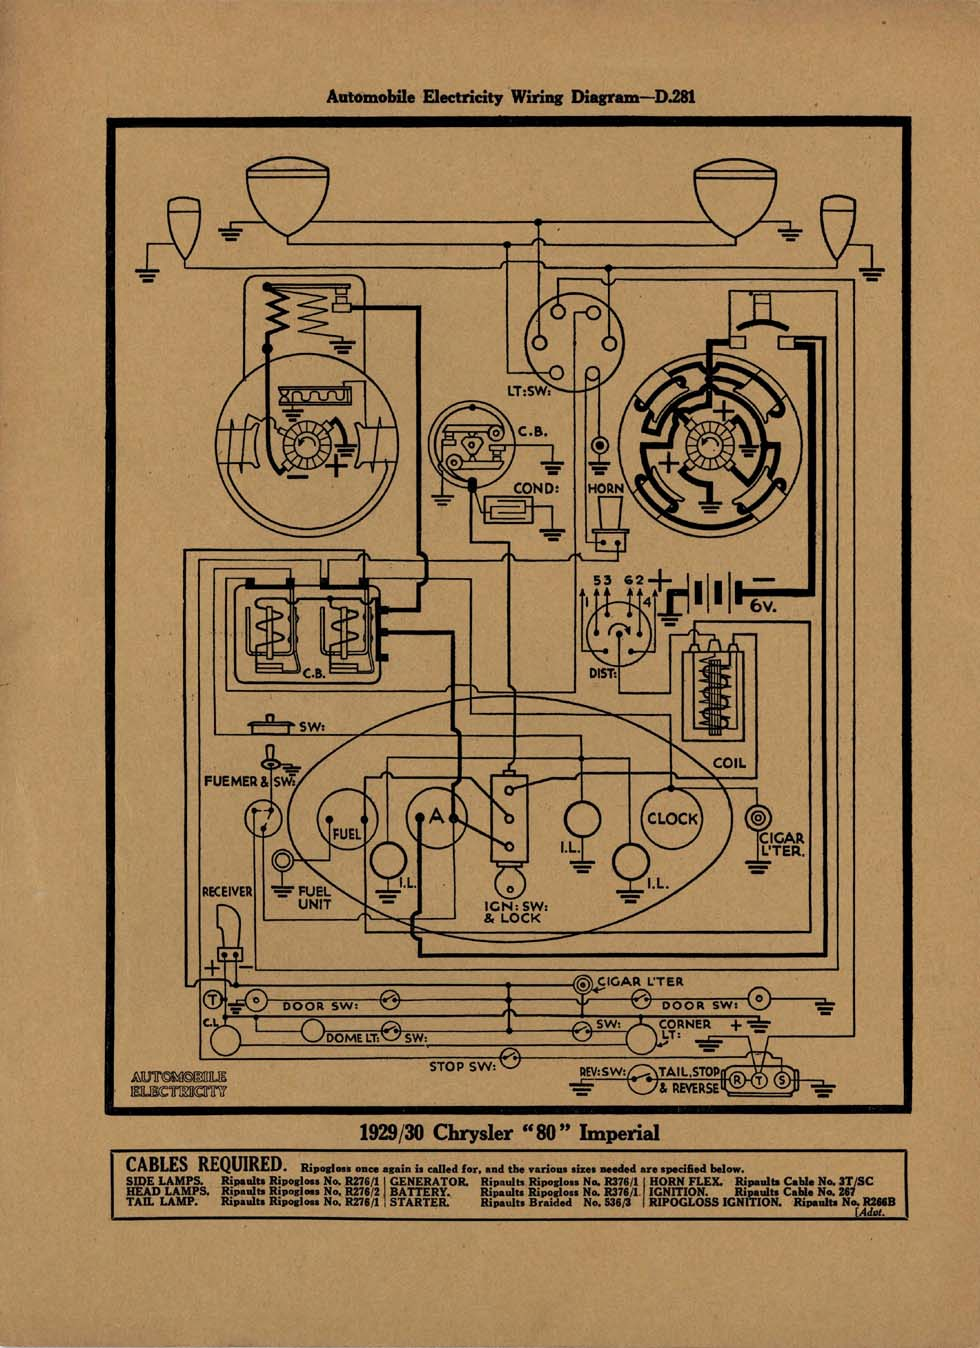 1929-1930 Chrysler Imperial Wiring Diagram